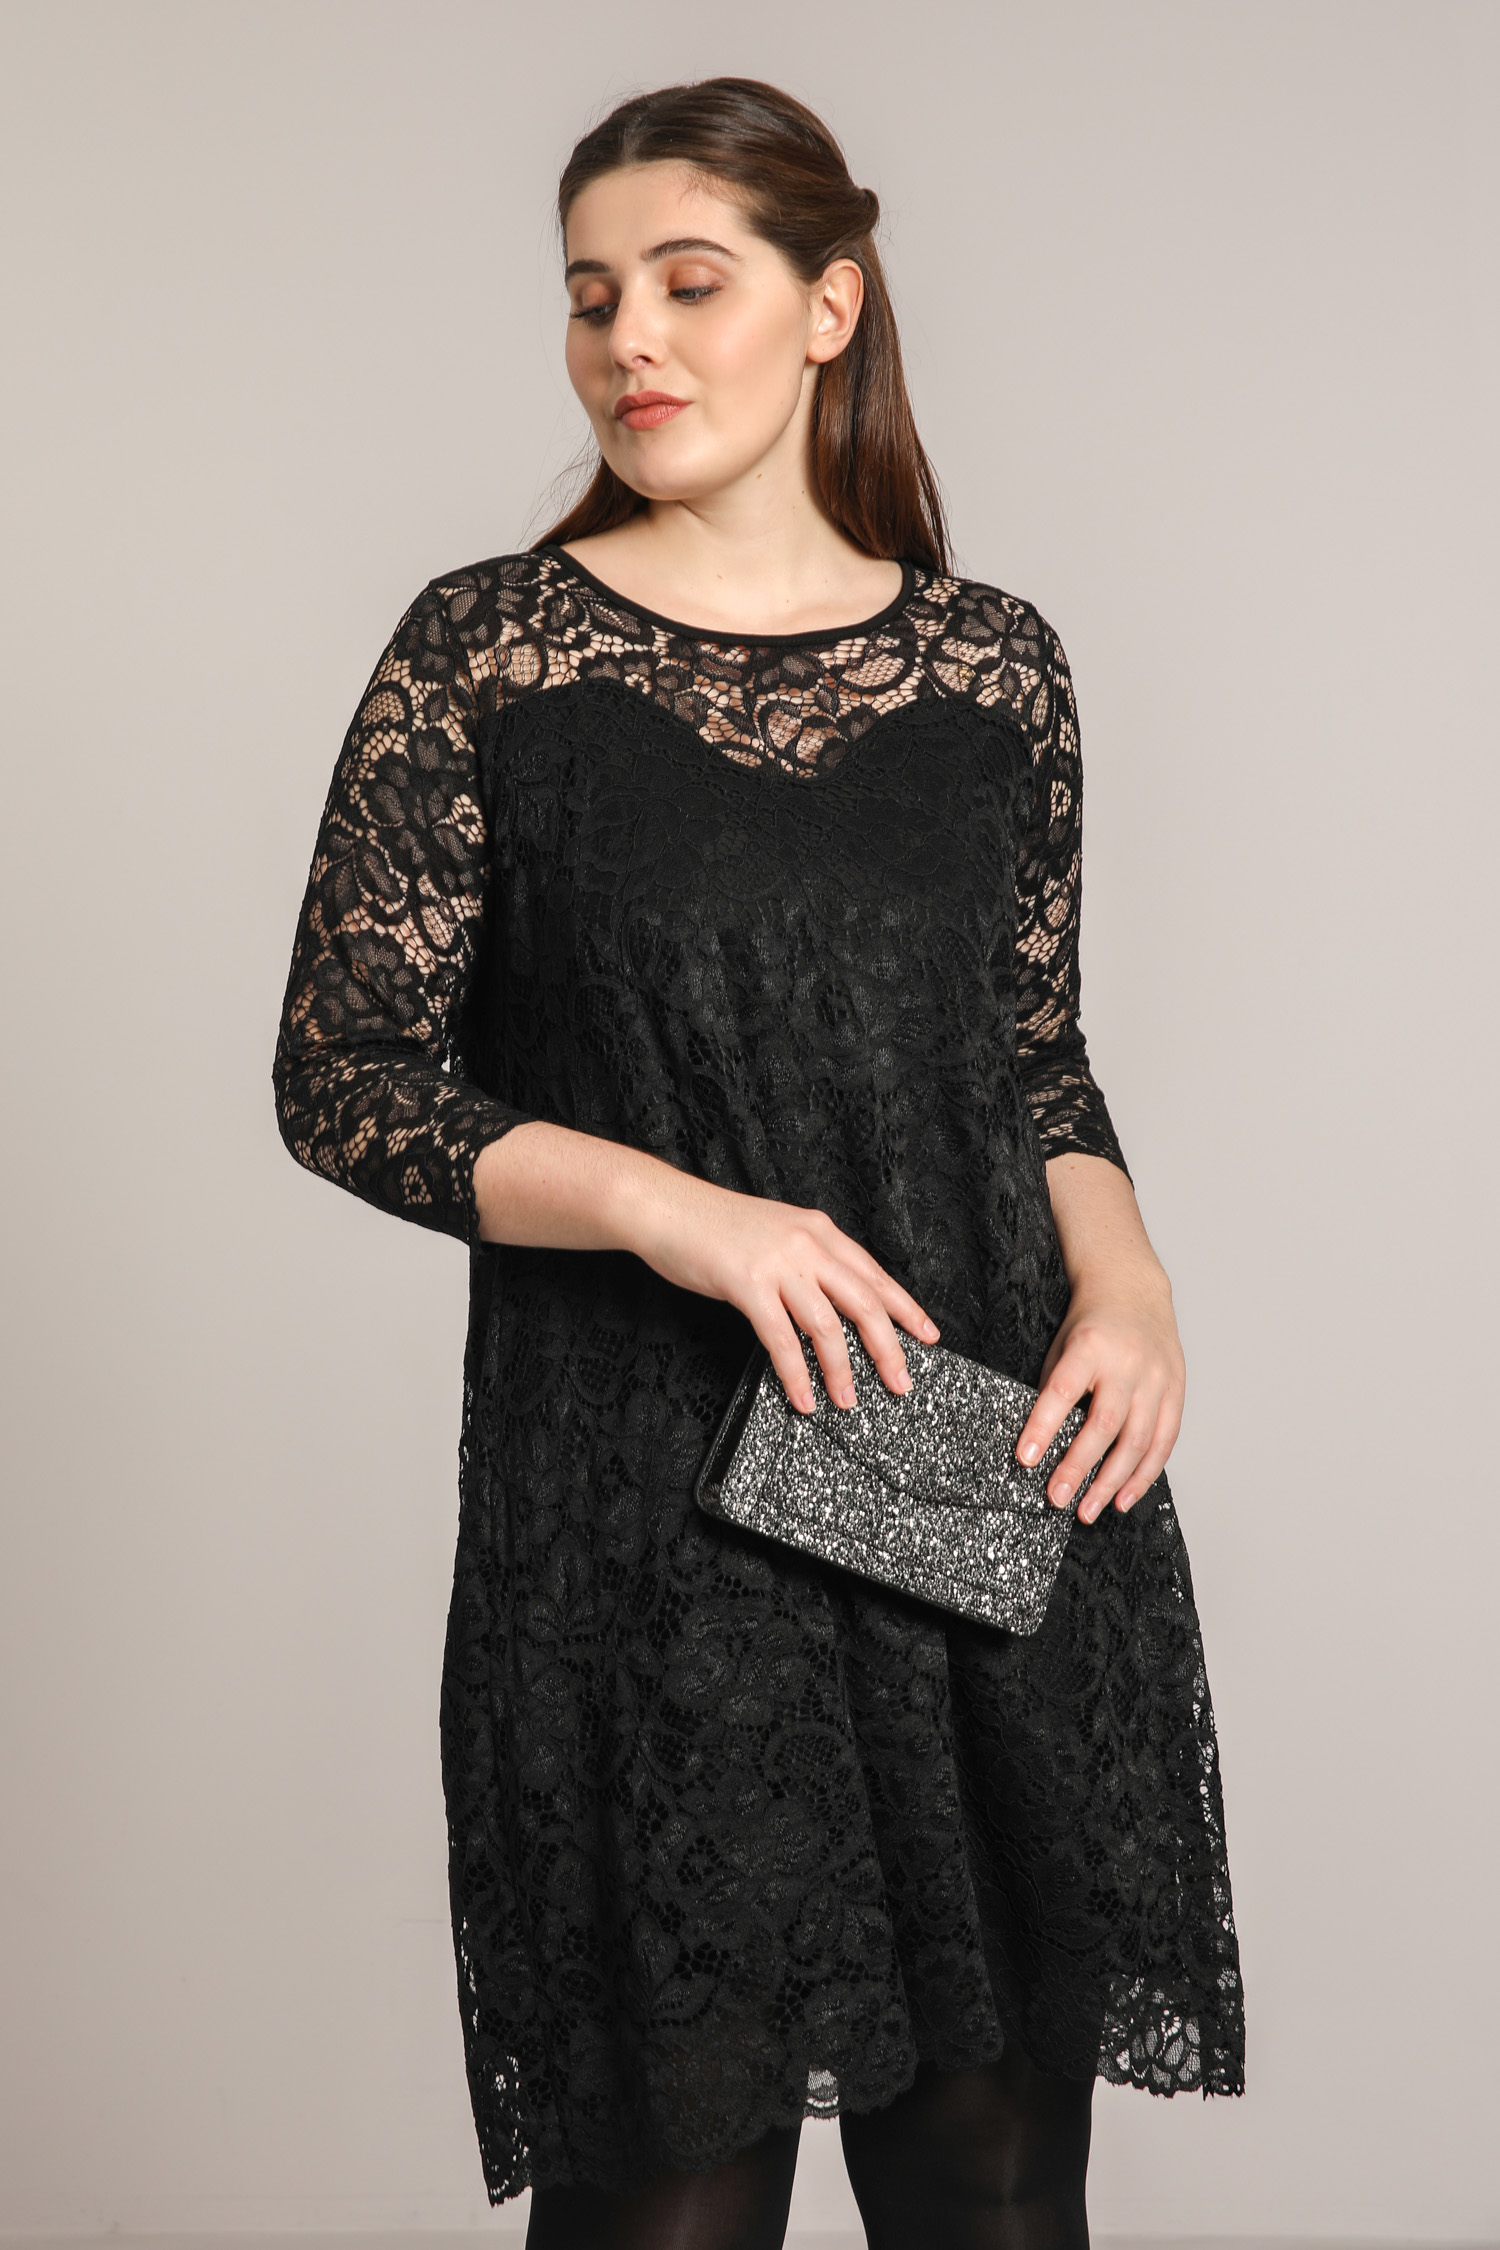 Lined lace dress